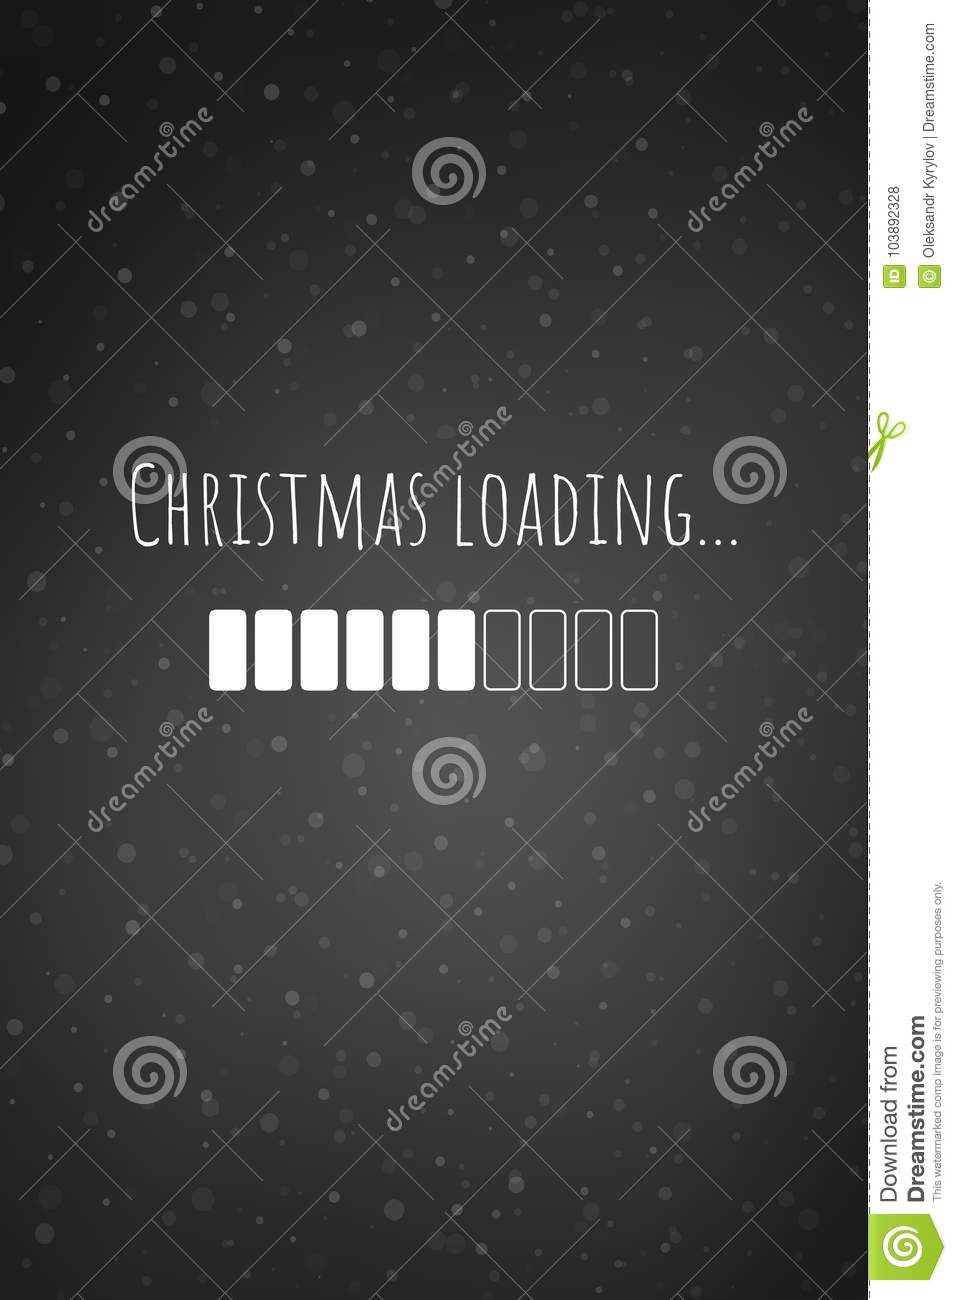 Christmas Loading Bar Card Or Iphone Wallpaper